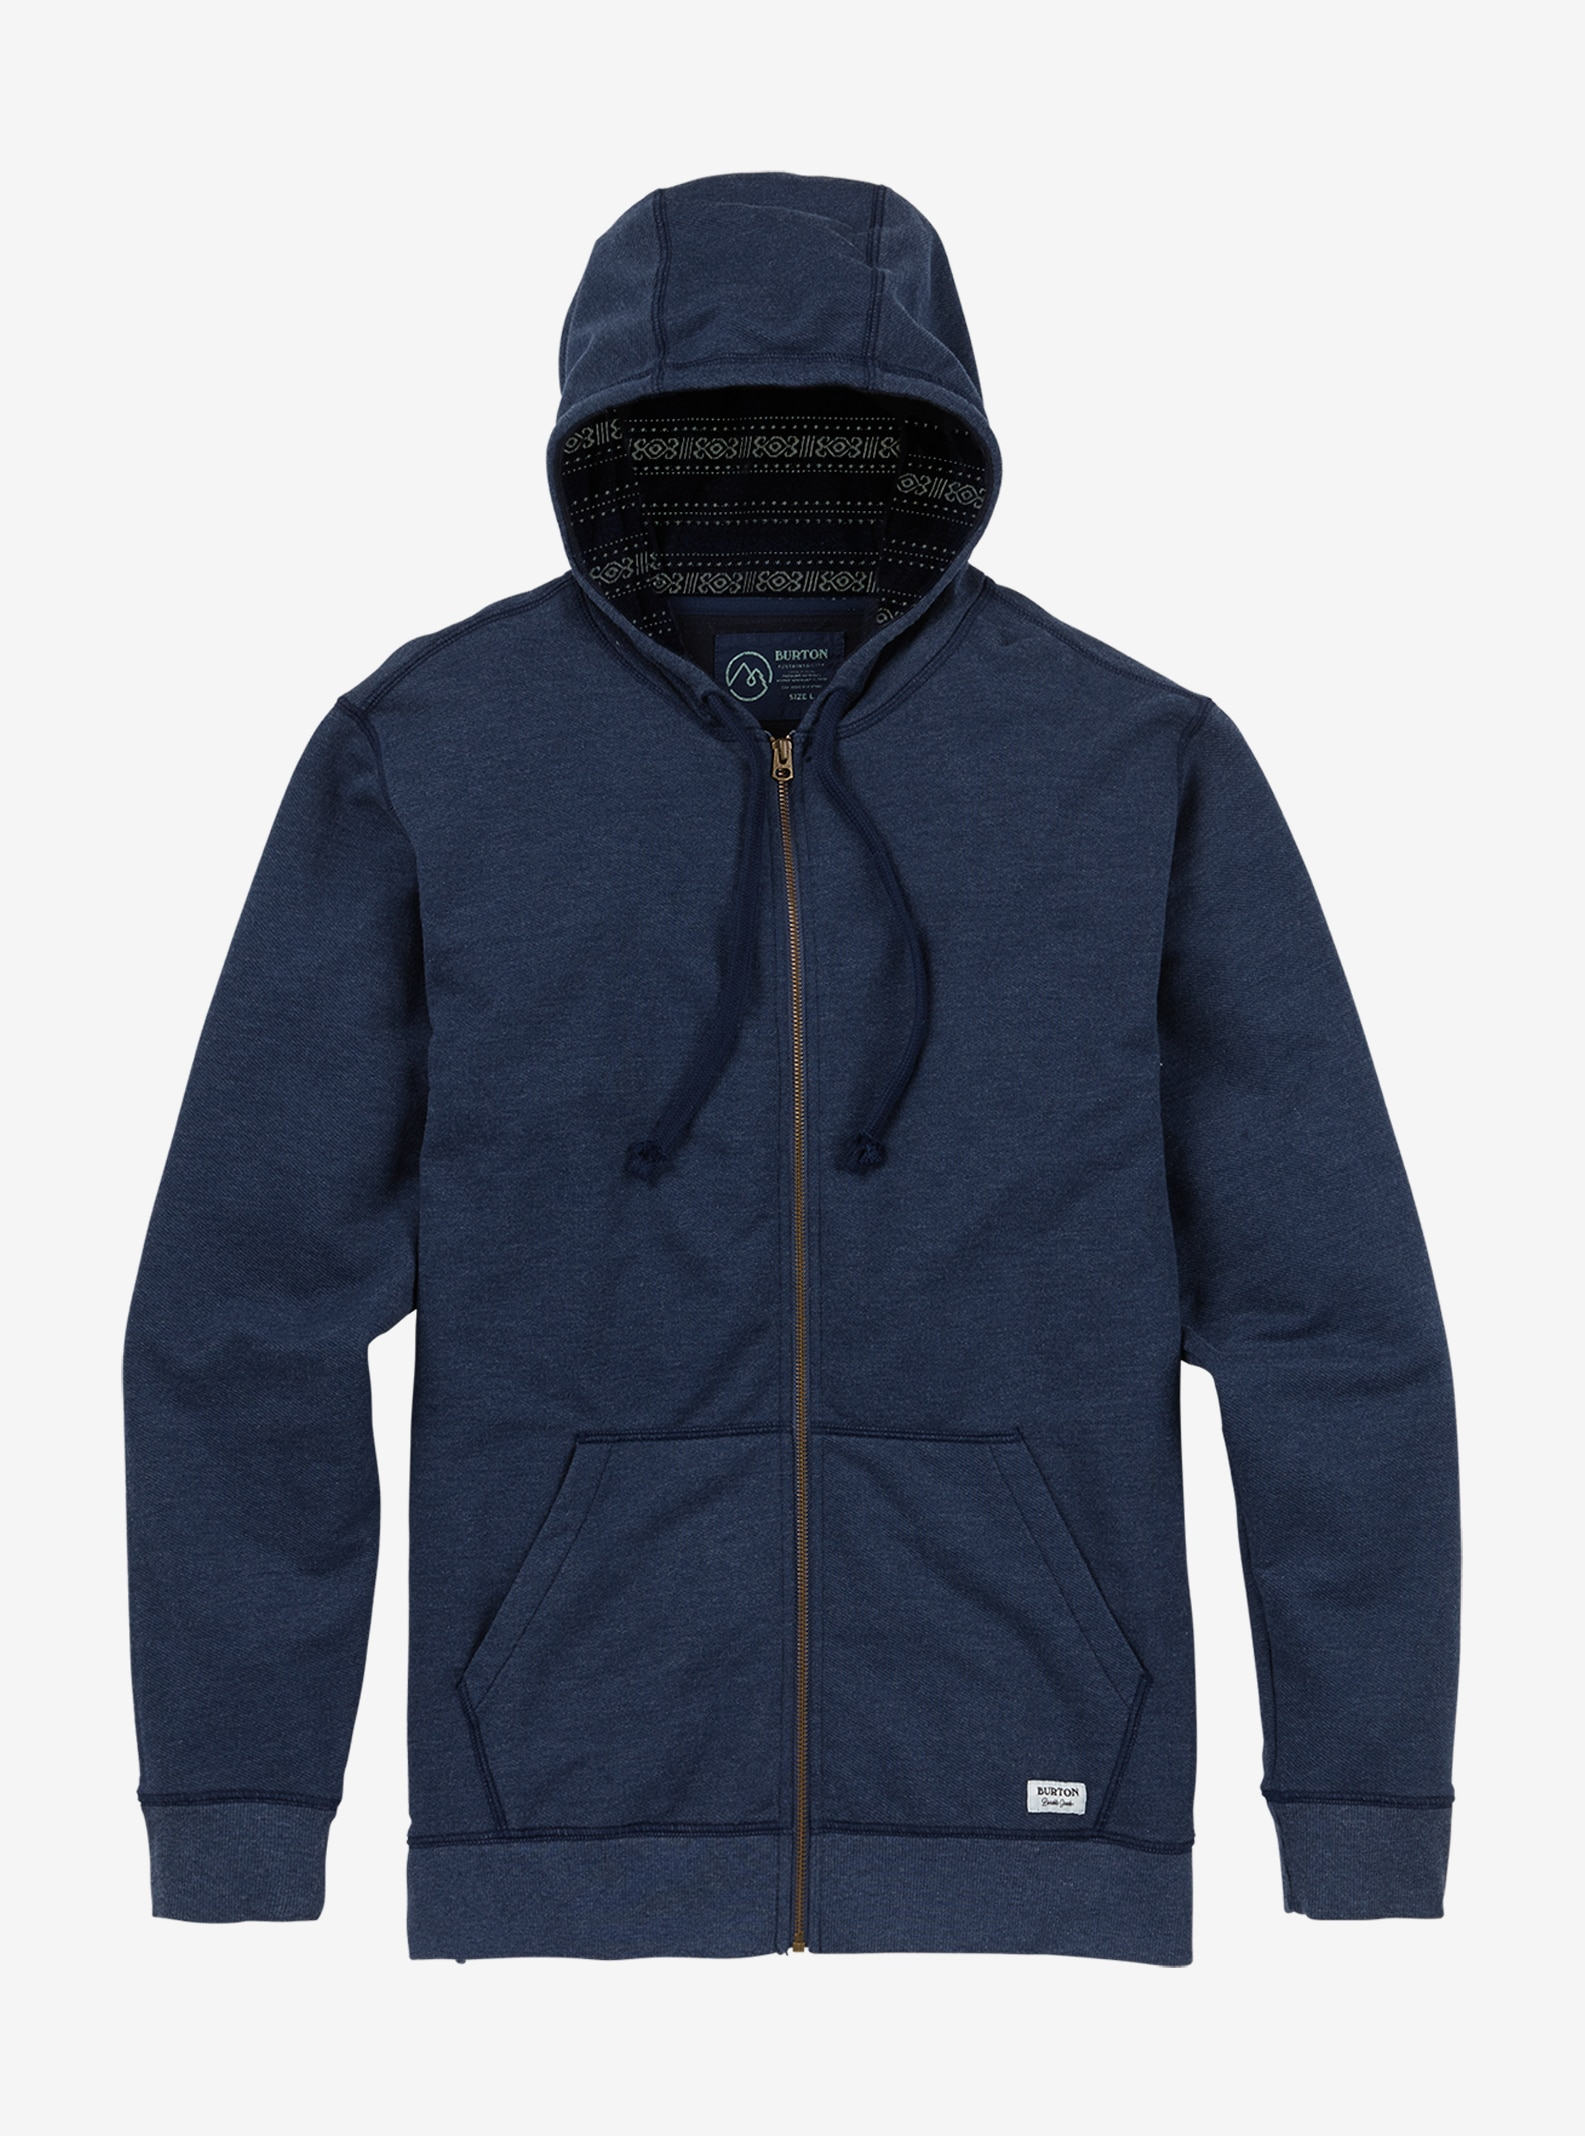 Men's Burton Subvert Full-Zip Hoodie shown in Mood Indigo